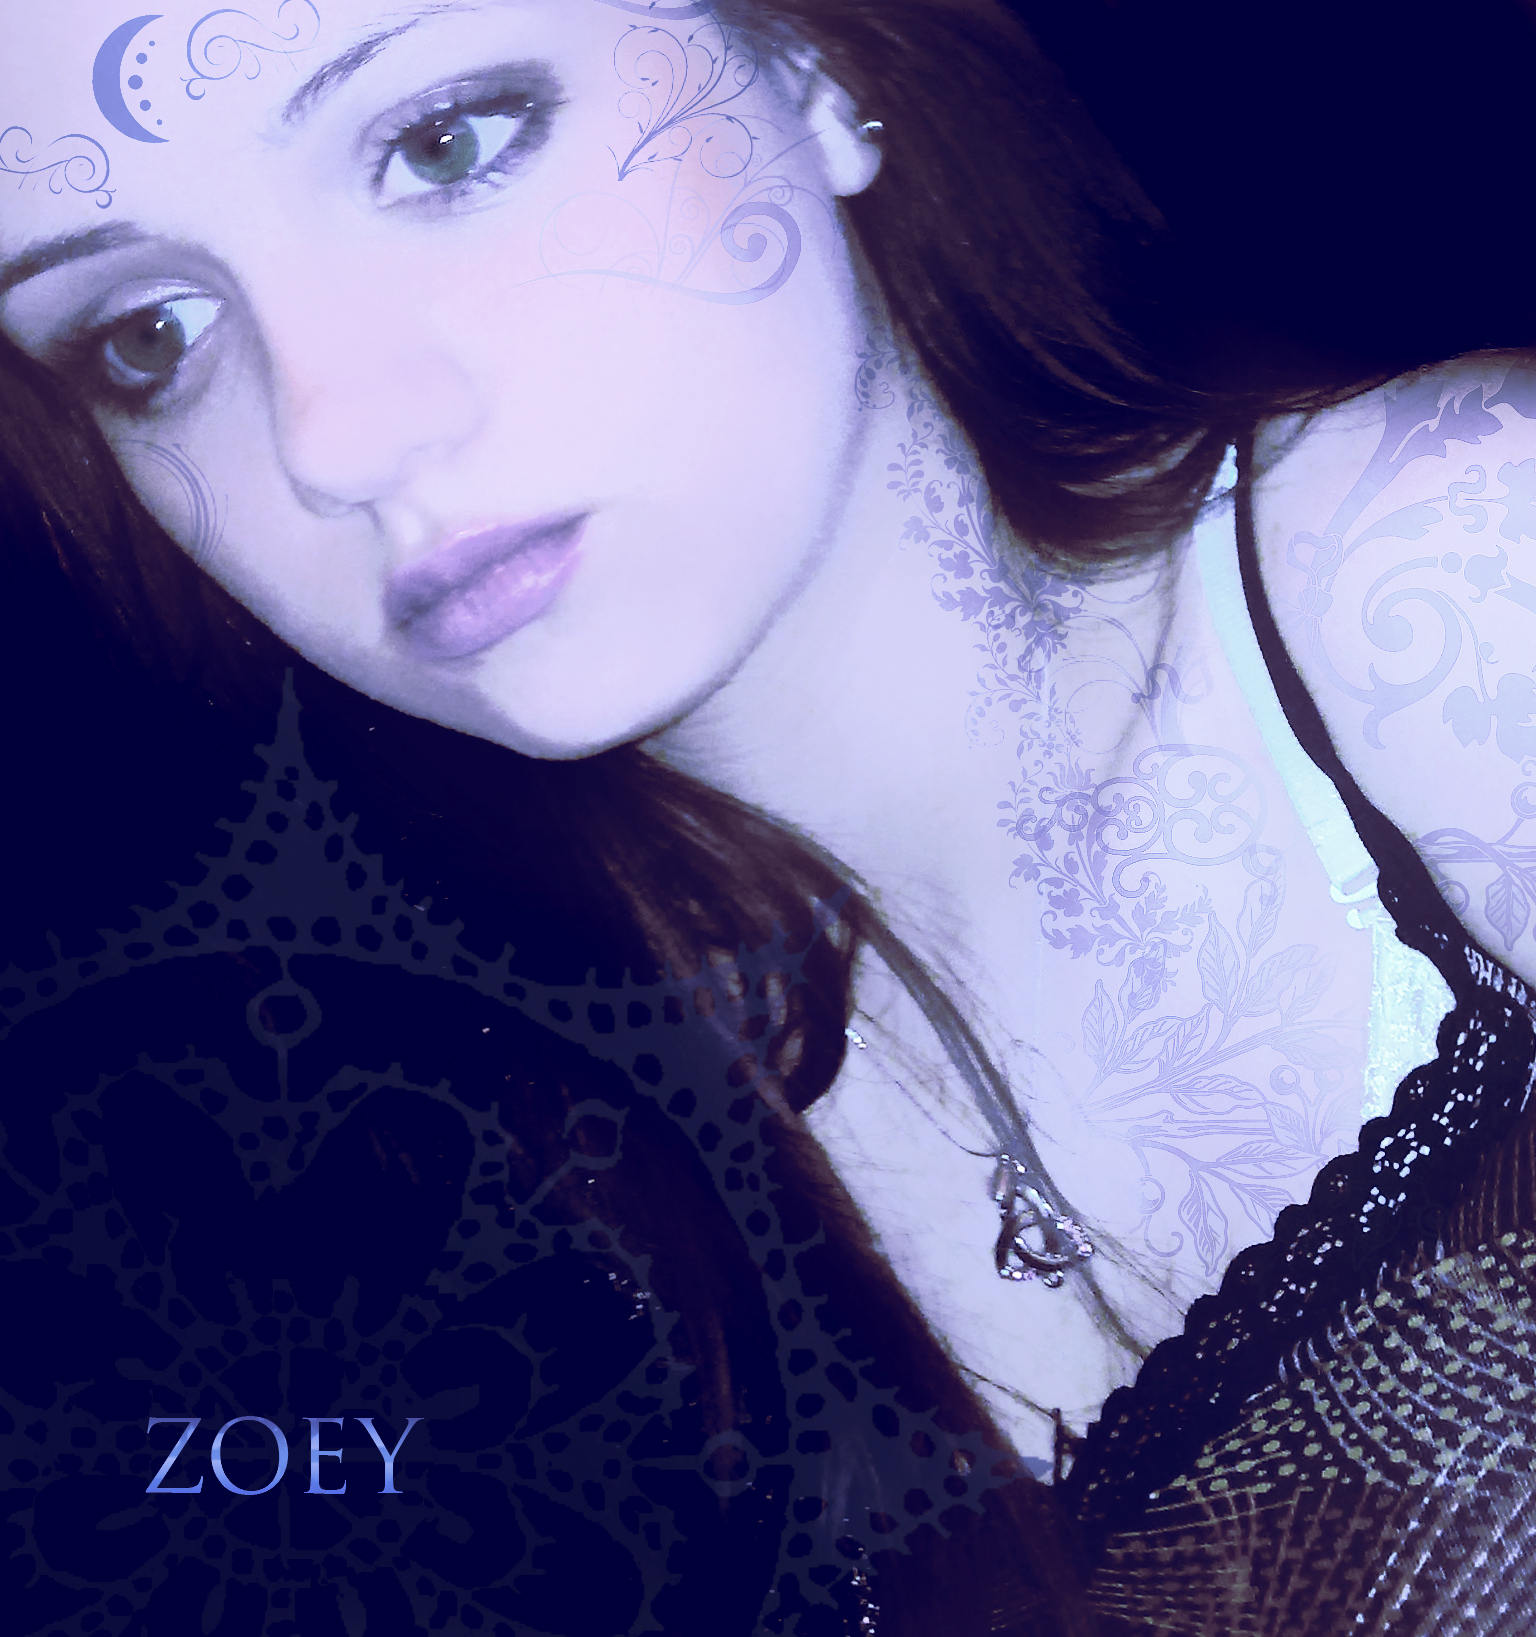 Zoey redbird house of night series photo 24330281 fanpop for Housse of night